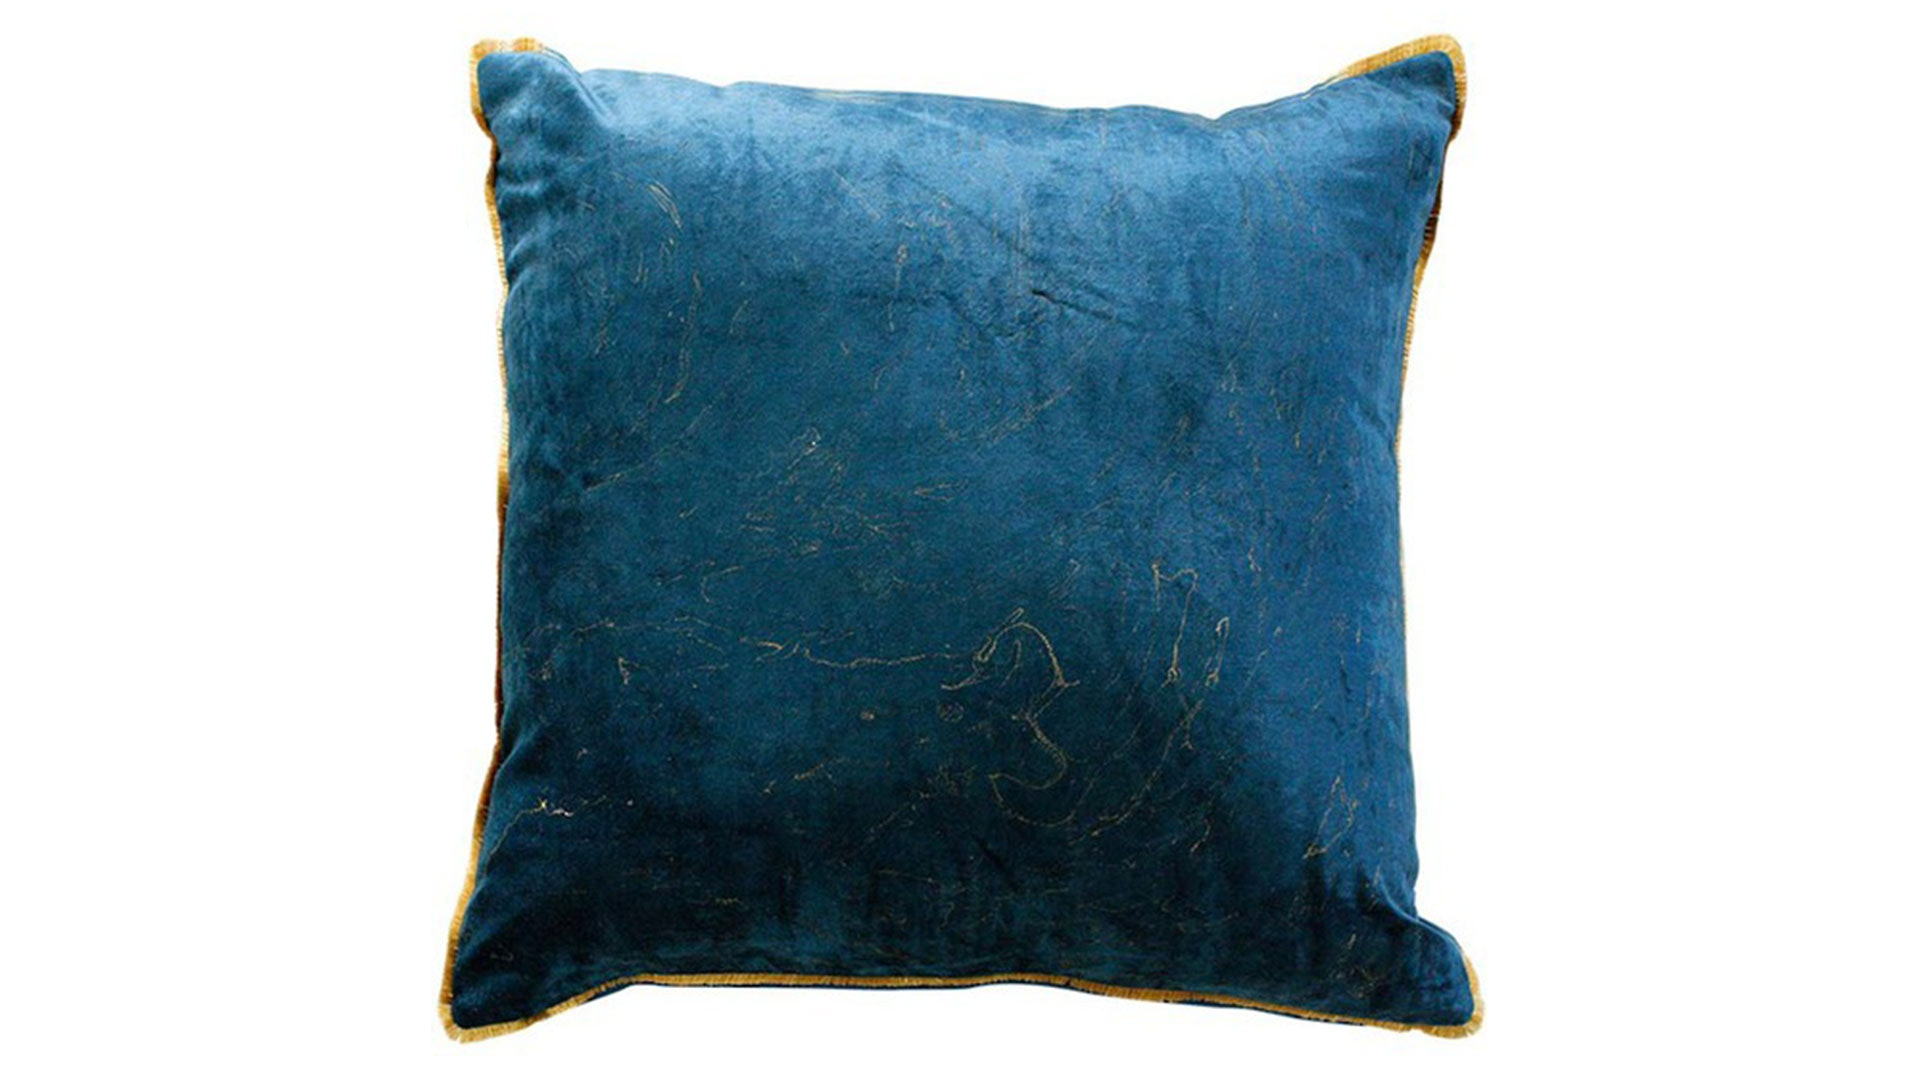 Alexander Cushion by Mulberi